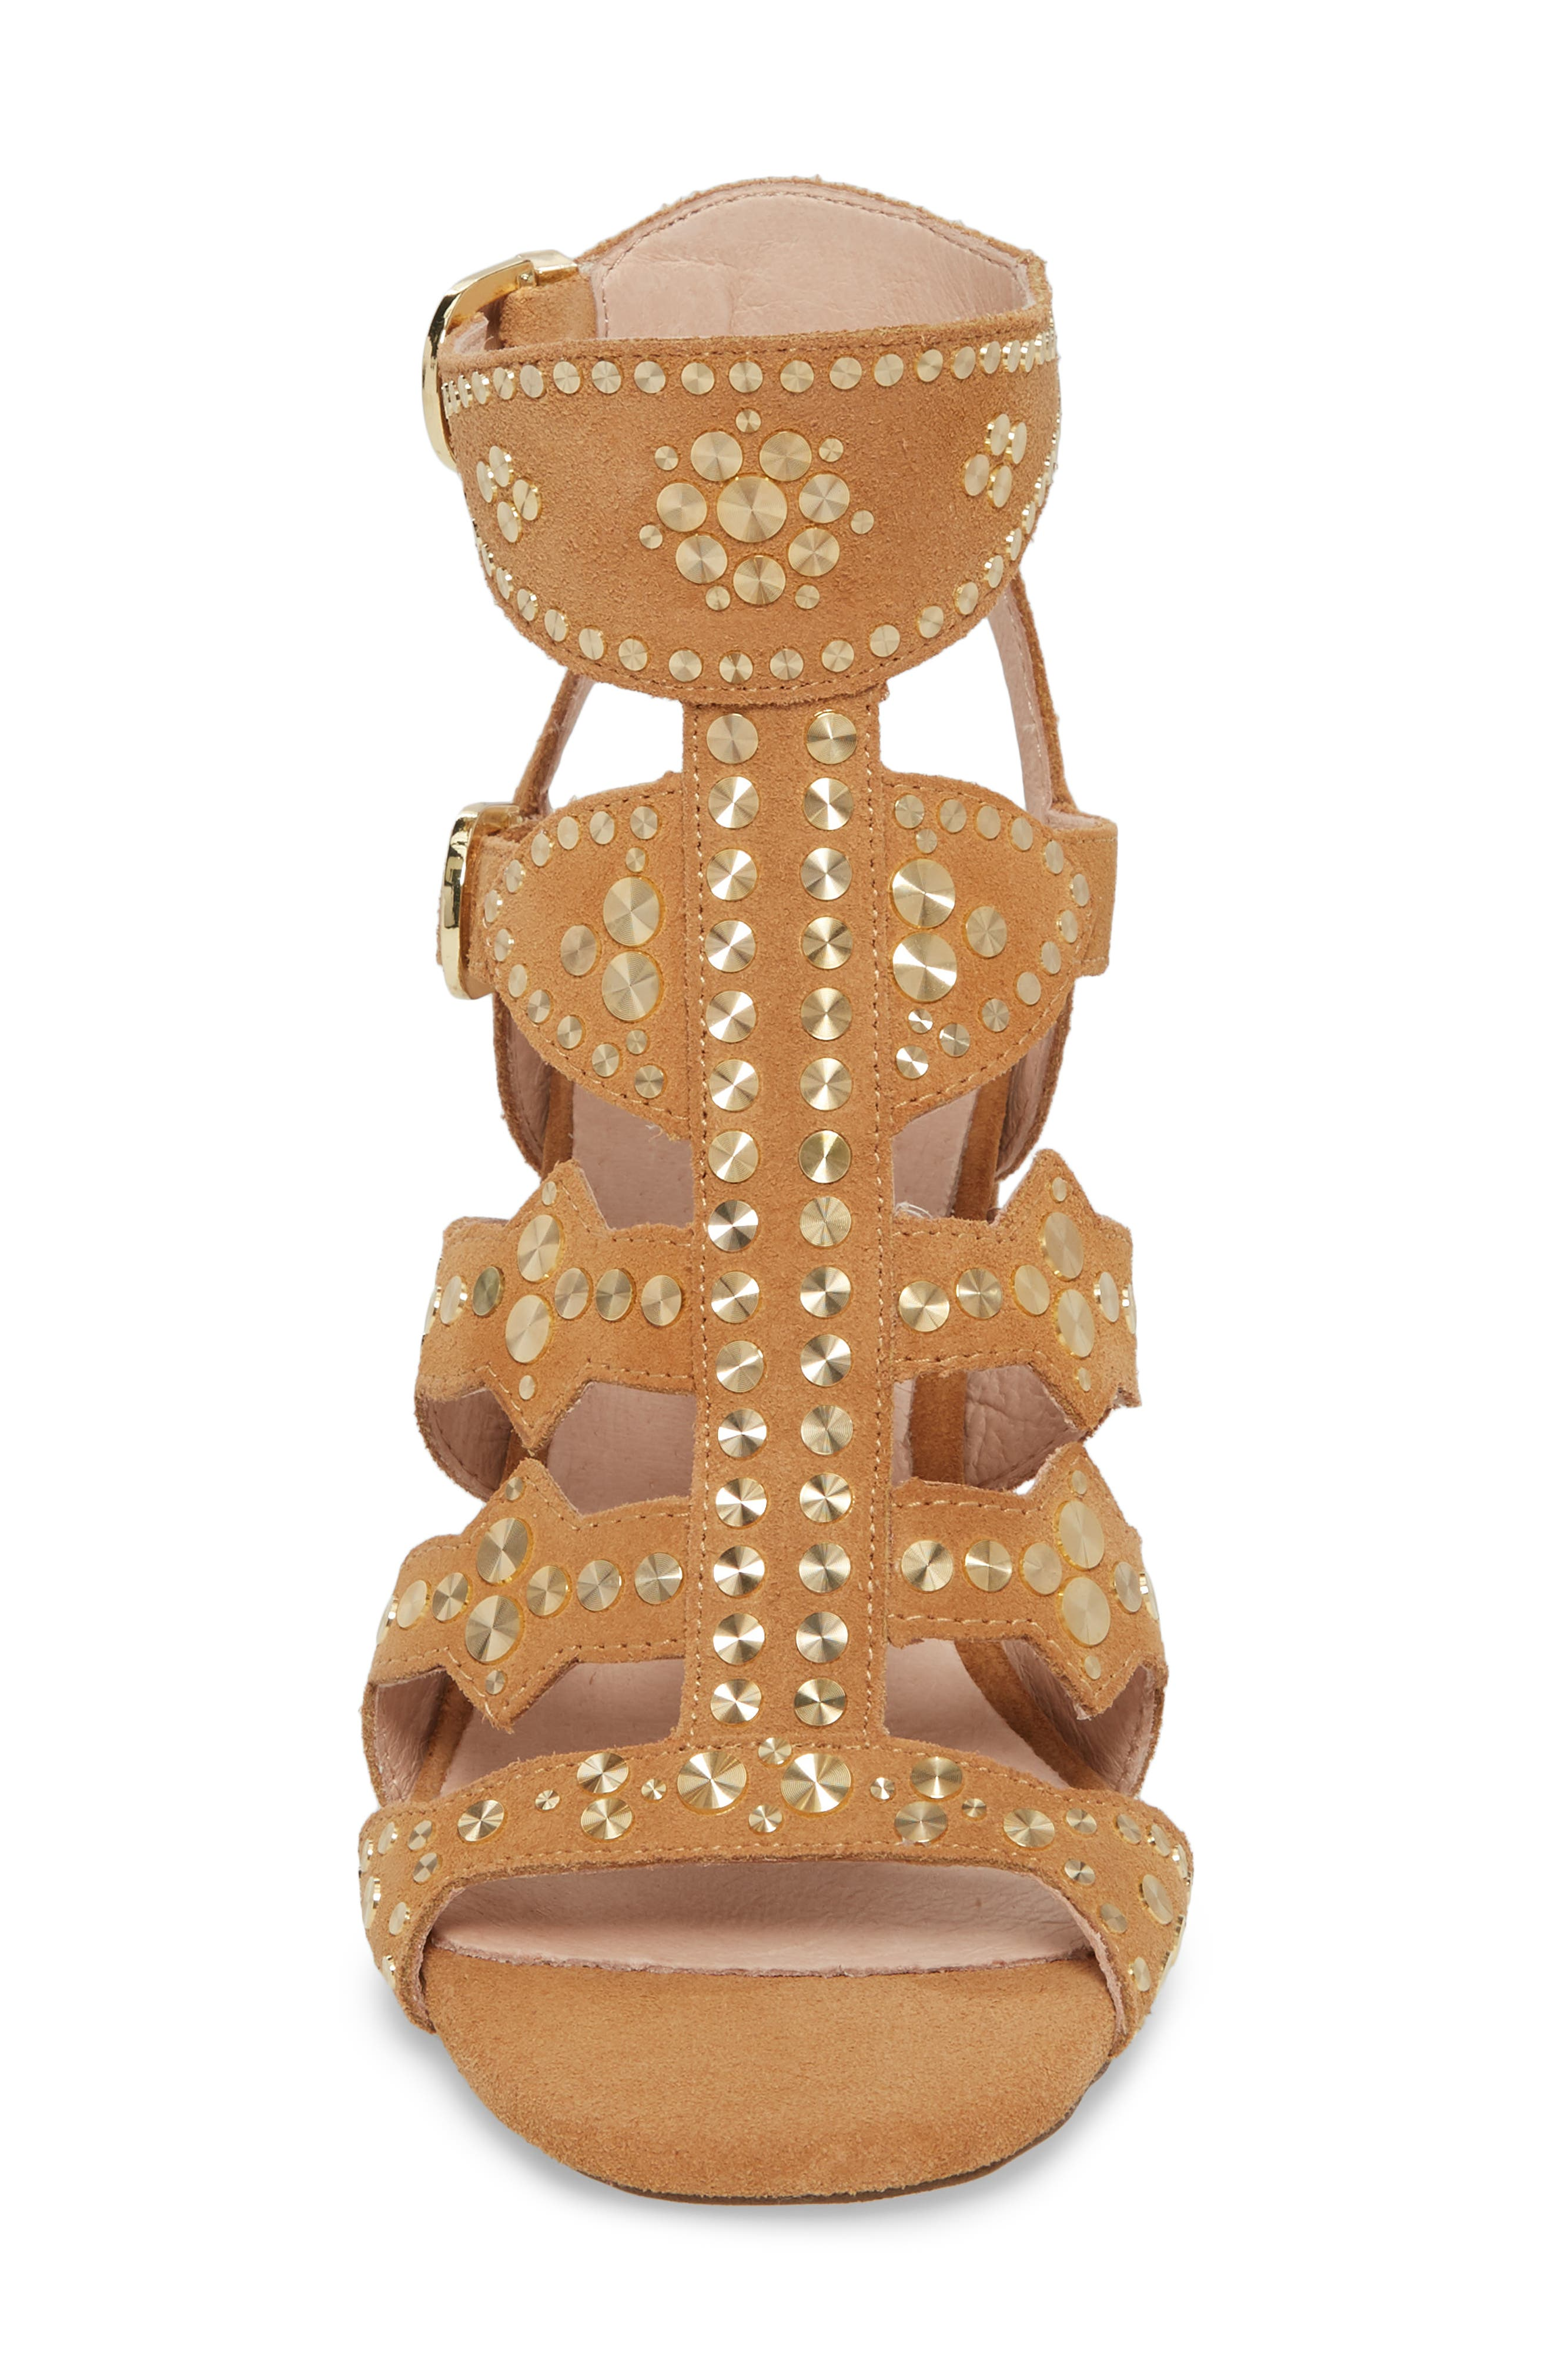 Cosmo Studded Sandal,                             Alternate thumbnail 4, color,                             Sand Suede